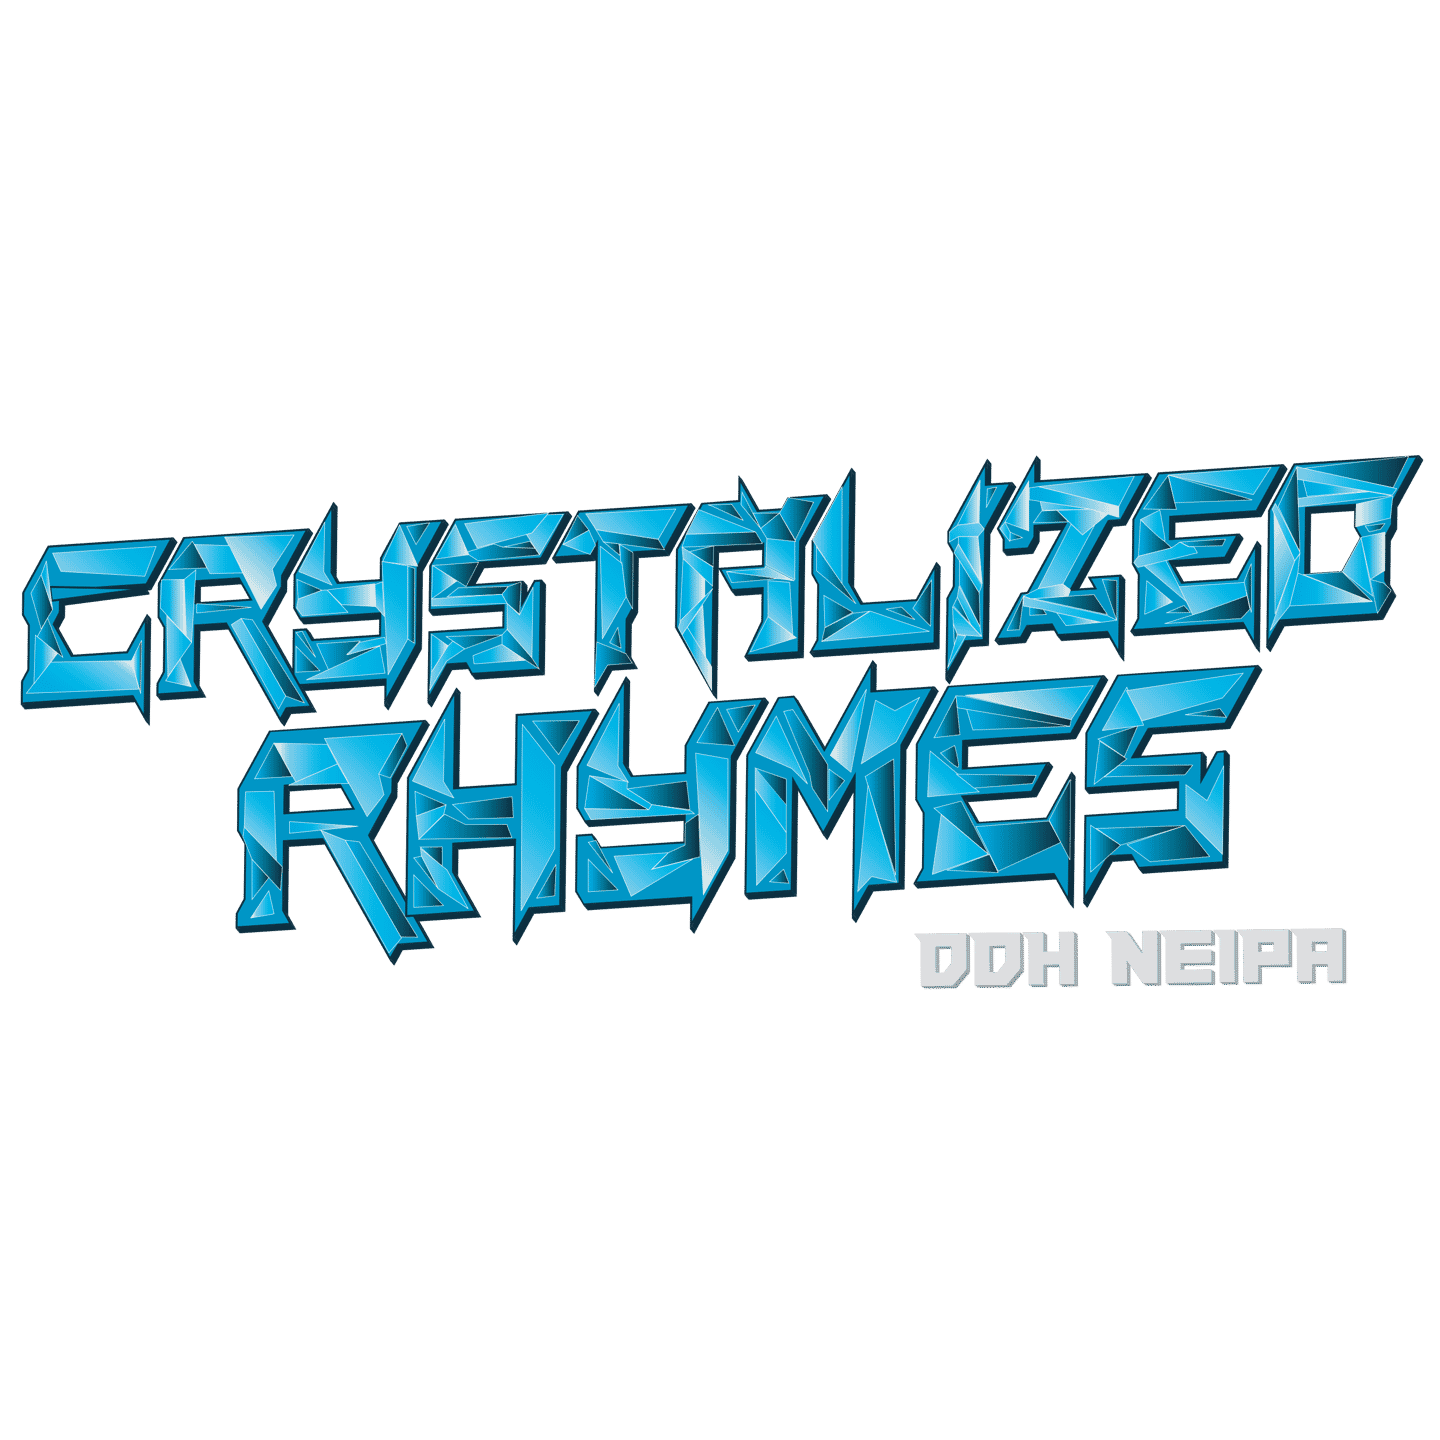 Crystalized Rhymes